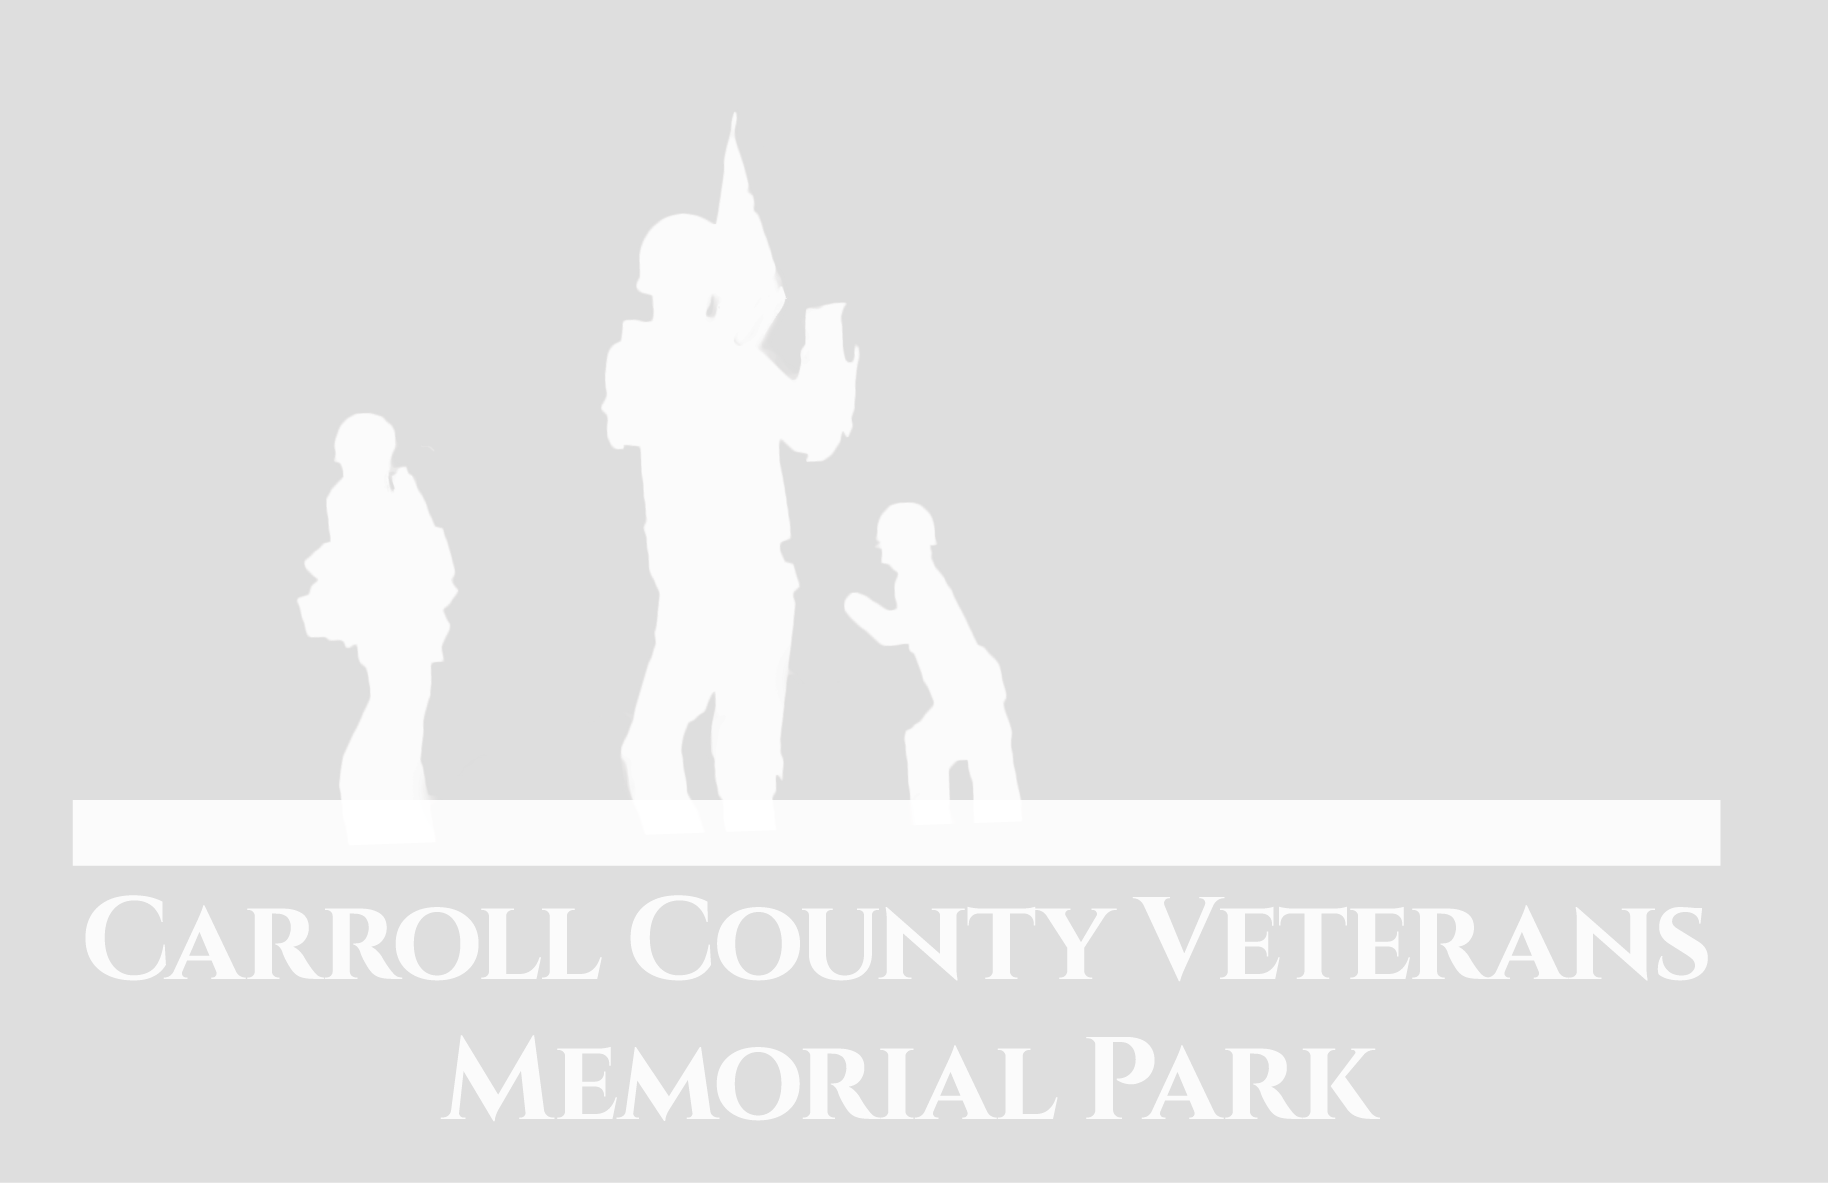 Carroll County Veterans Memorial Park